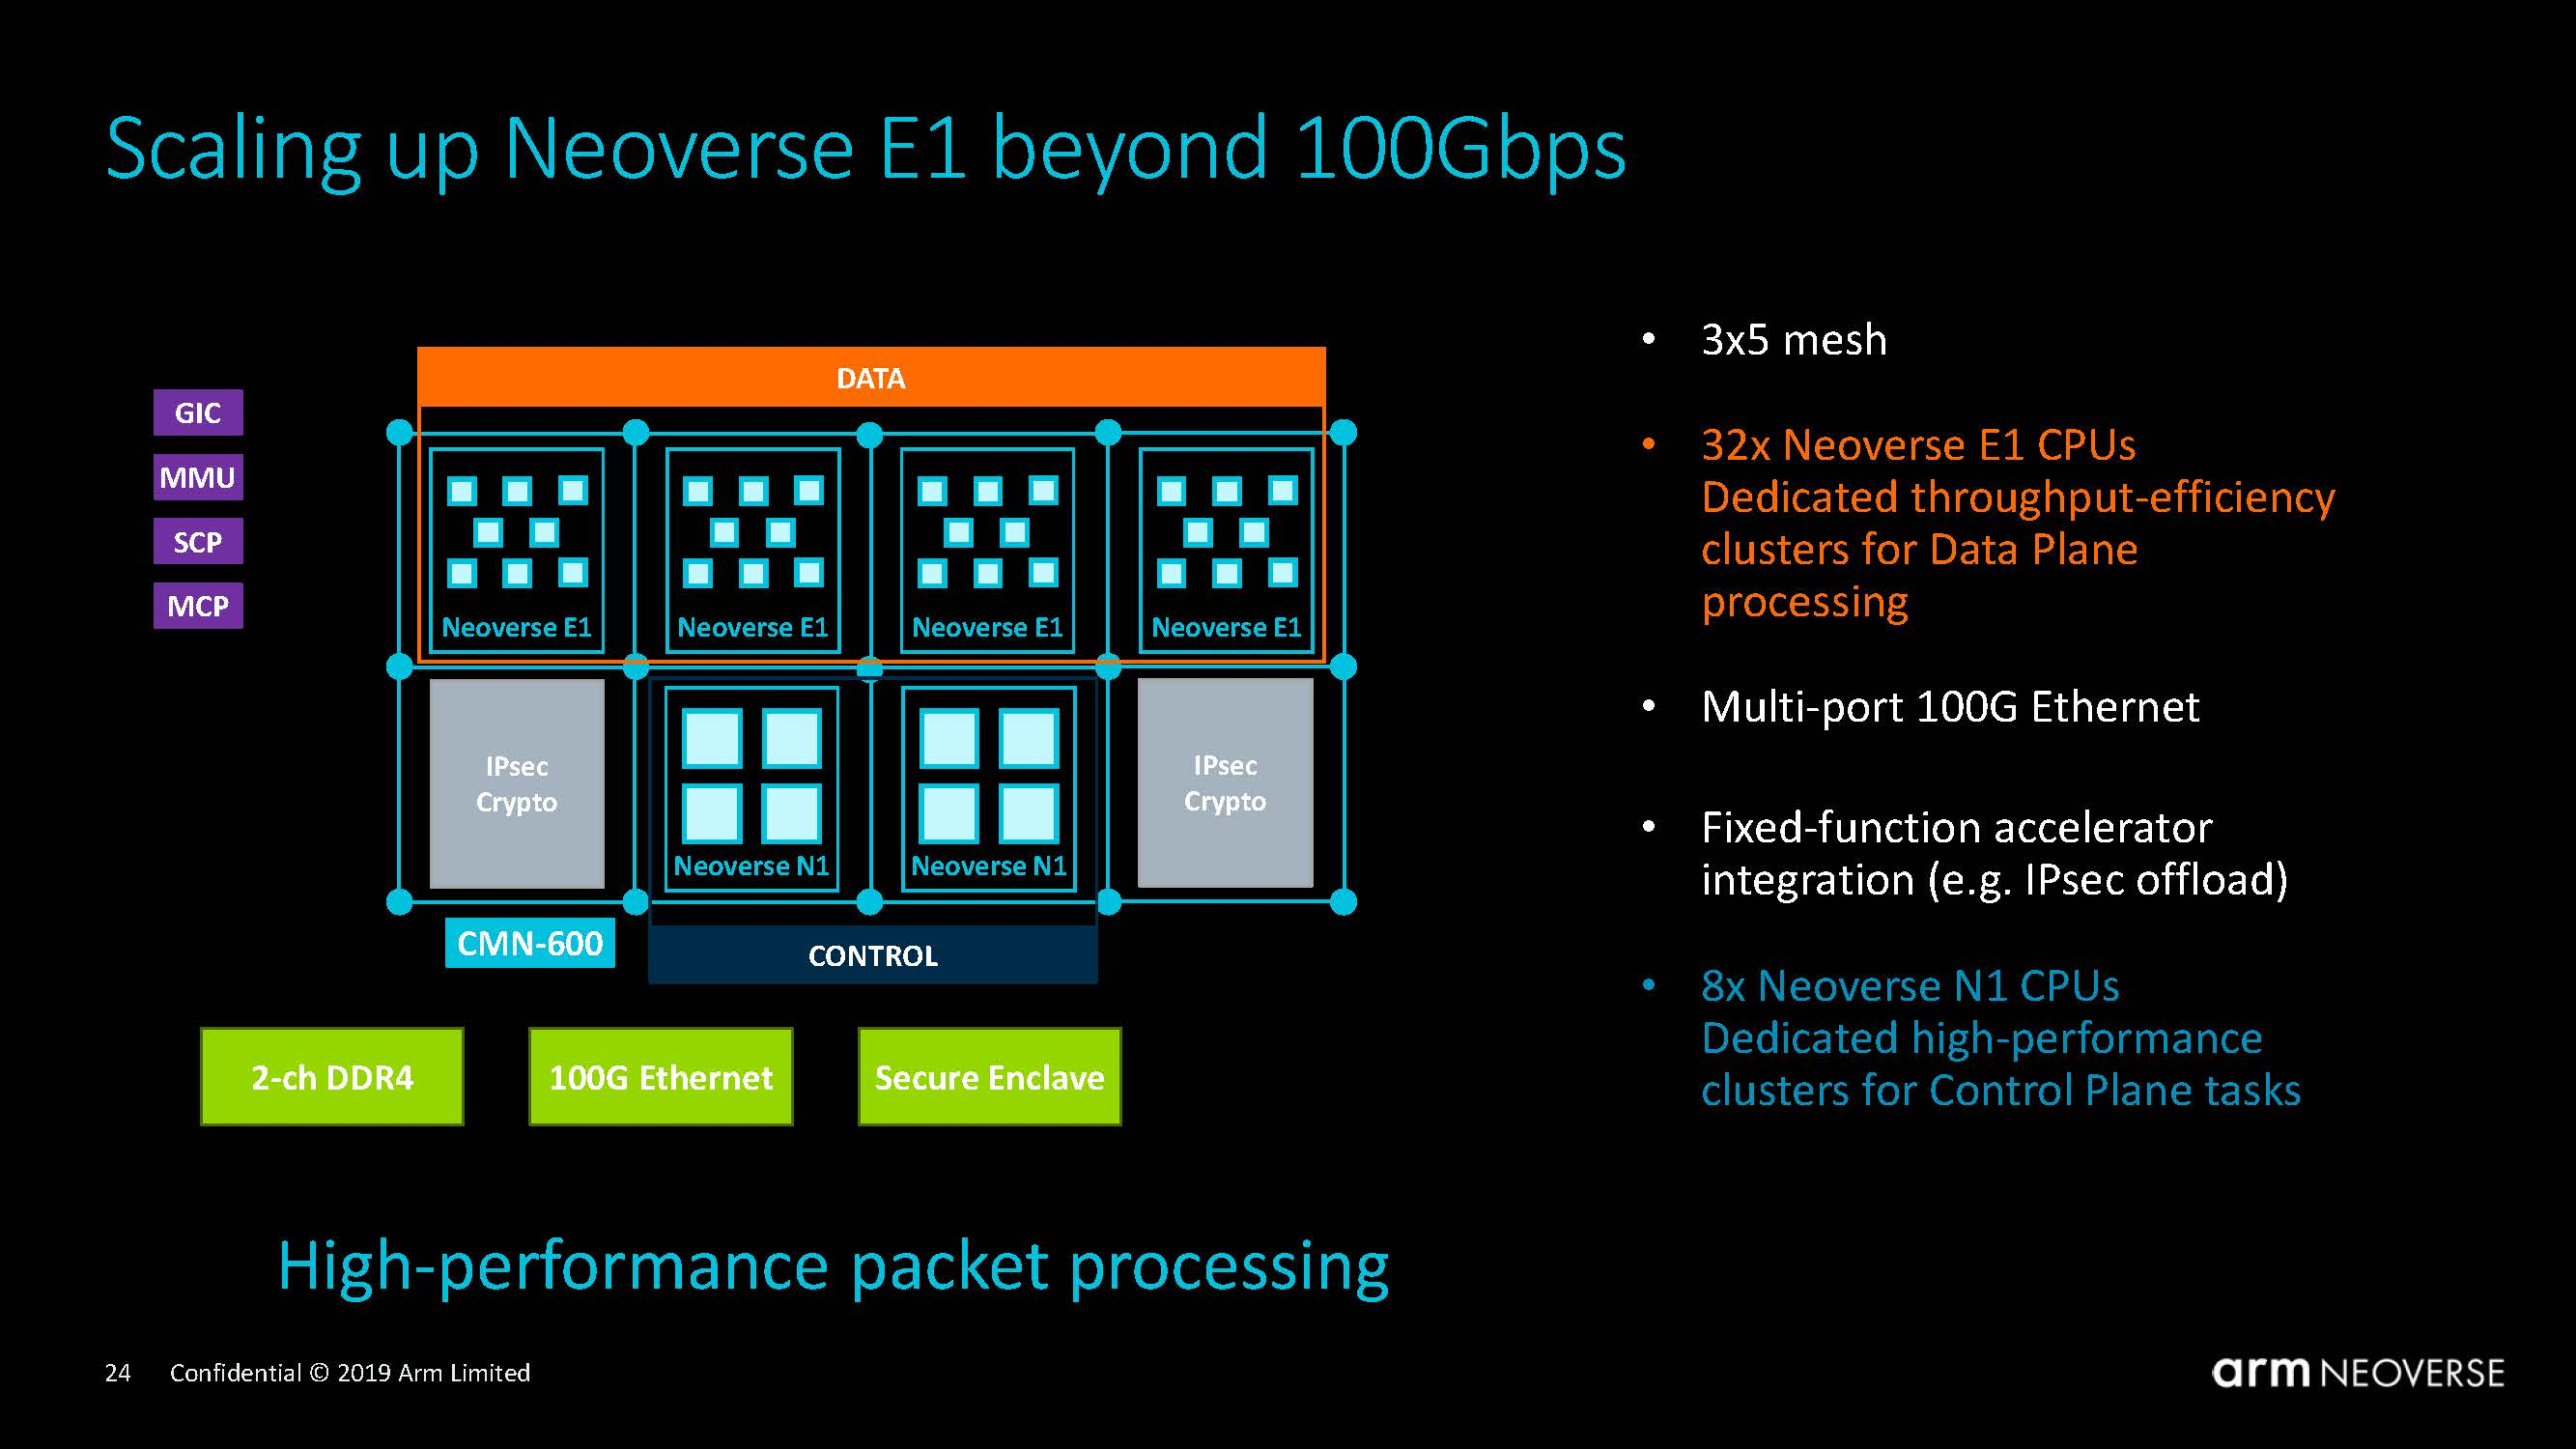 Arm Neoverse Tech Day 2019 Neoverse E1 Beyond 100Gbps